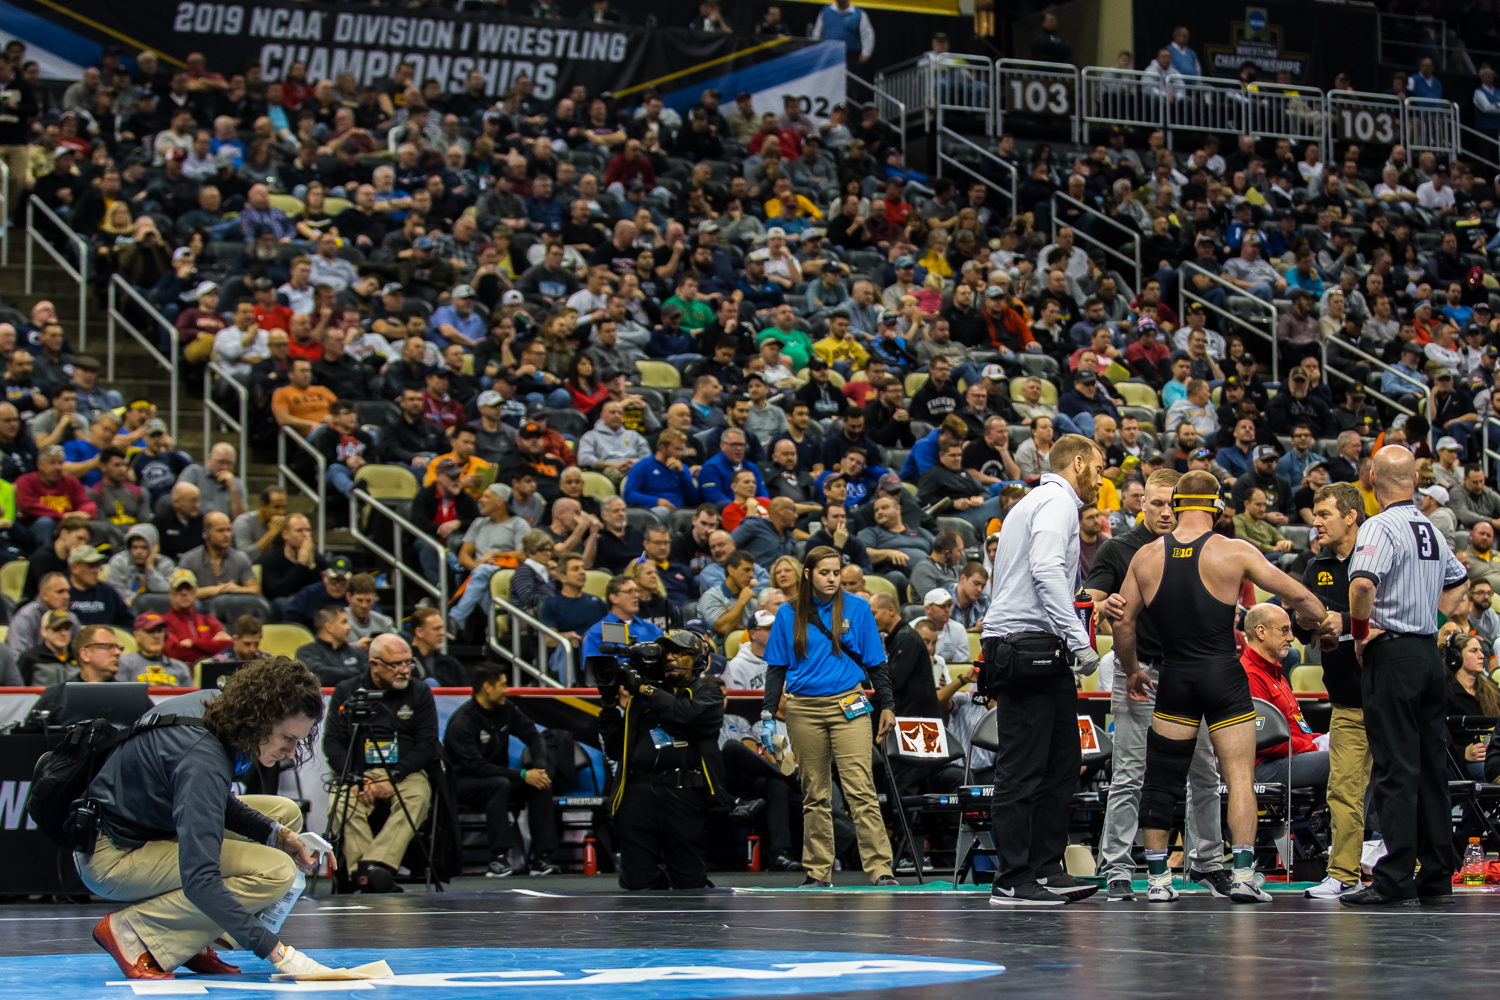 Iowa%E2%80%99s+165-pound+Alex+Marinelli+talks+to+coaches+during+a+blood+timeout+during+the+fifth+session+of+the+2019+NCAA+D1+Wrestling+Championships+at+the+PPG+Paints+Arena+in+Pittsburgh%2C+PA+on+Saturday%2C+March+23%2C+2019.+Marinelli+won+by+decision%2C+9-3%2C+and+earned+seventh+in+the+weight+class.